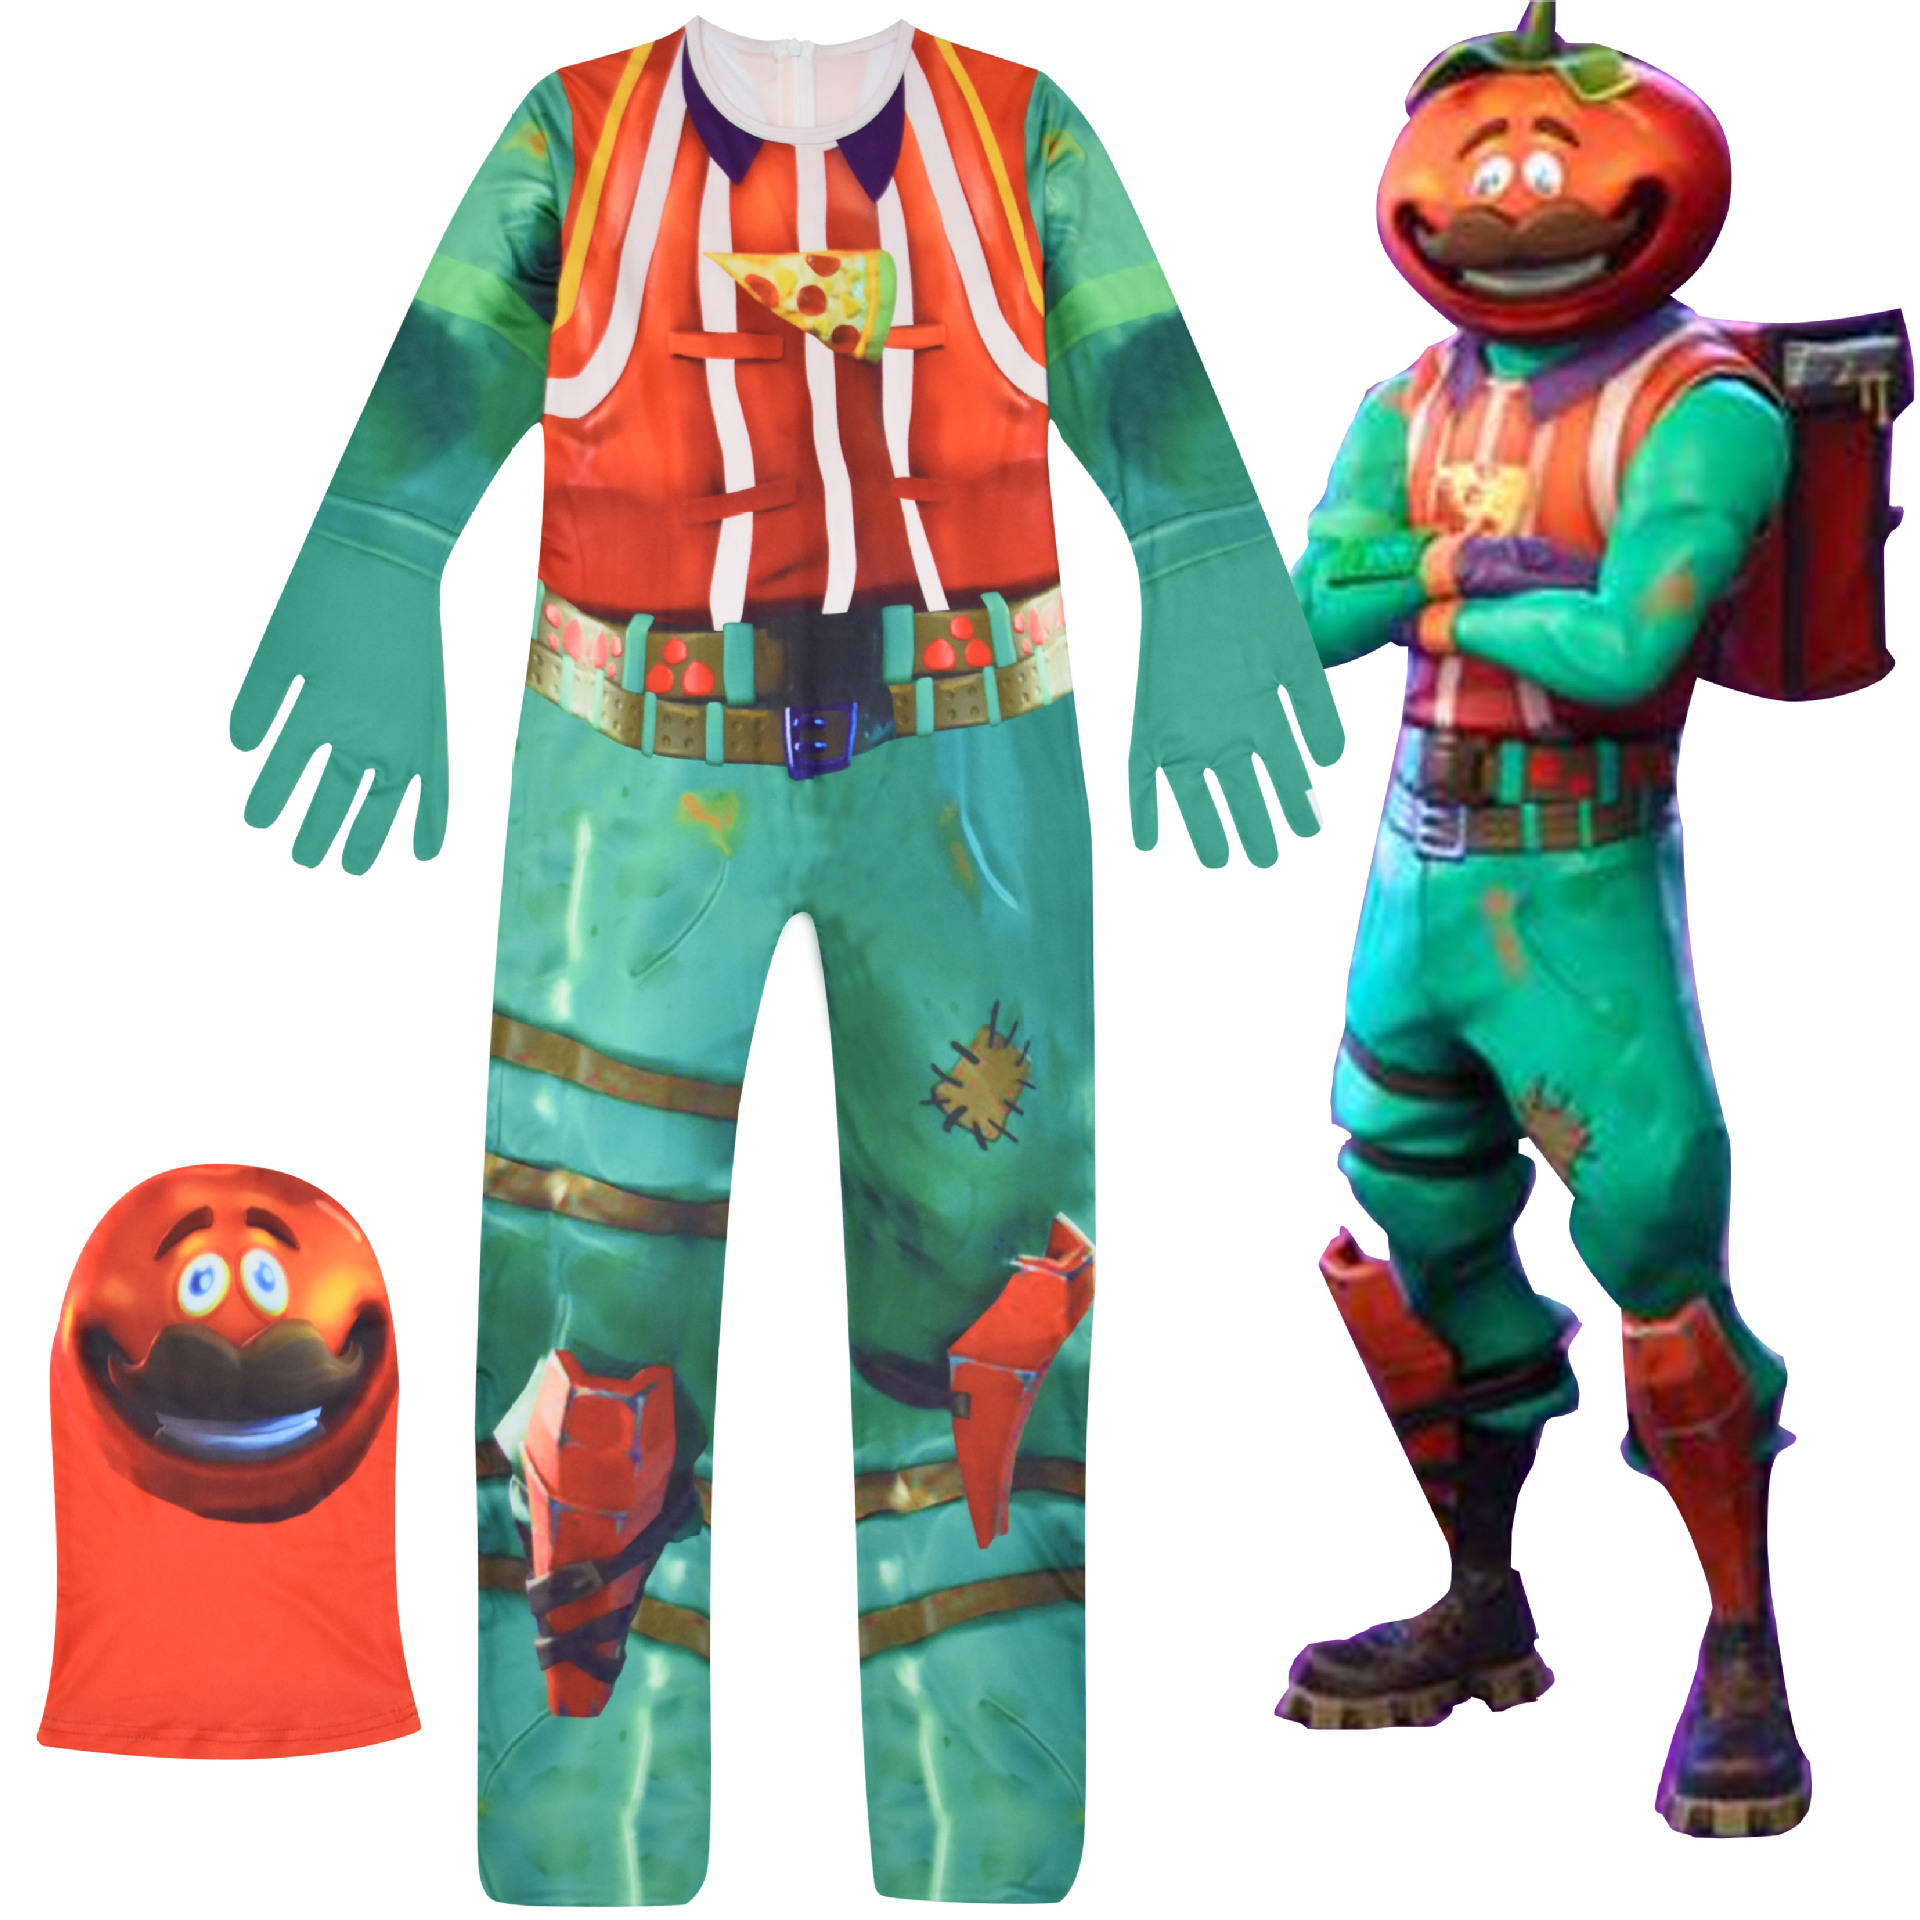 Selling Flytrap Skin Decoration Raven Boy Cosplay Clothes New Year Costume Battle Royale Party Funny Kid Clothing Pumpkin Man